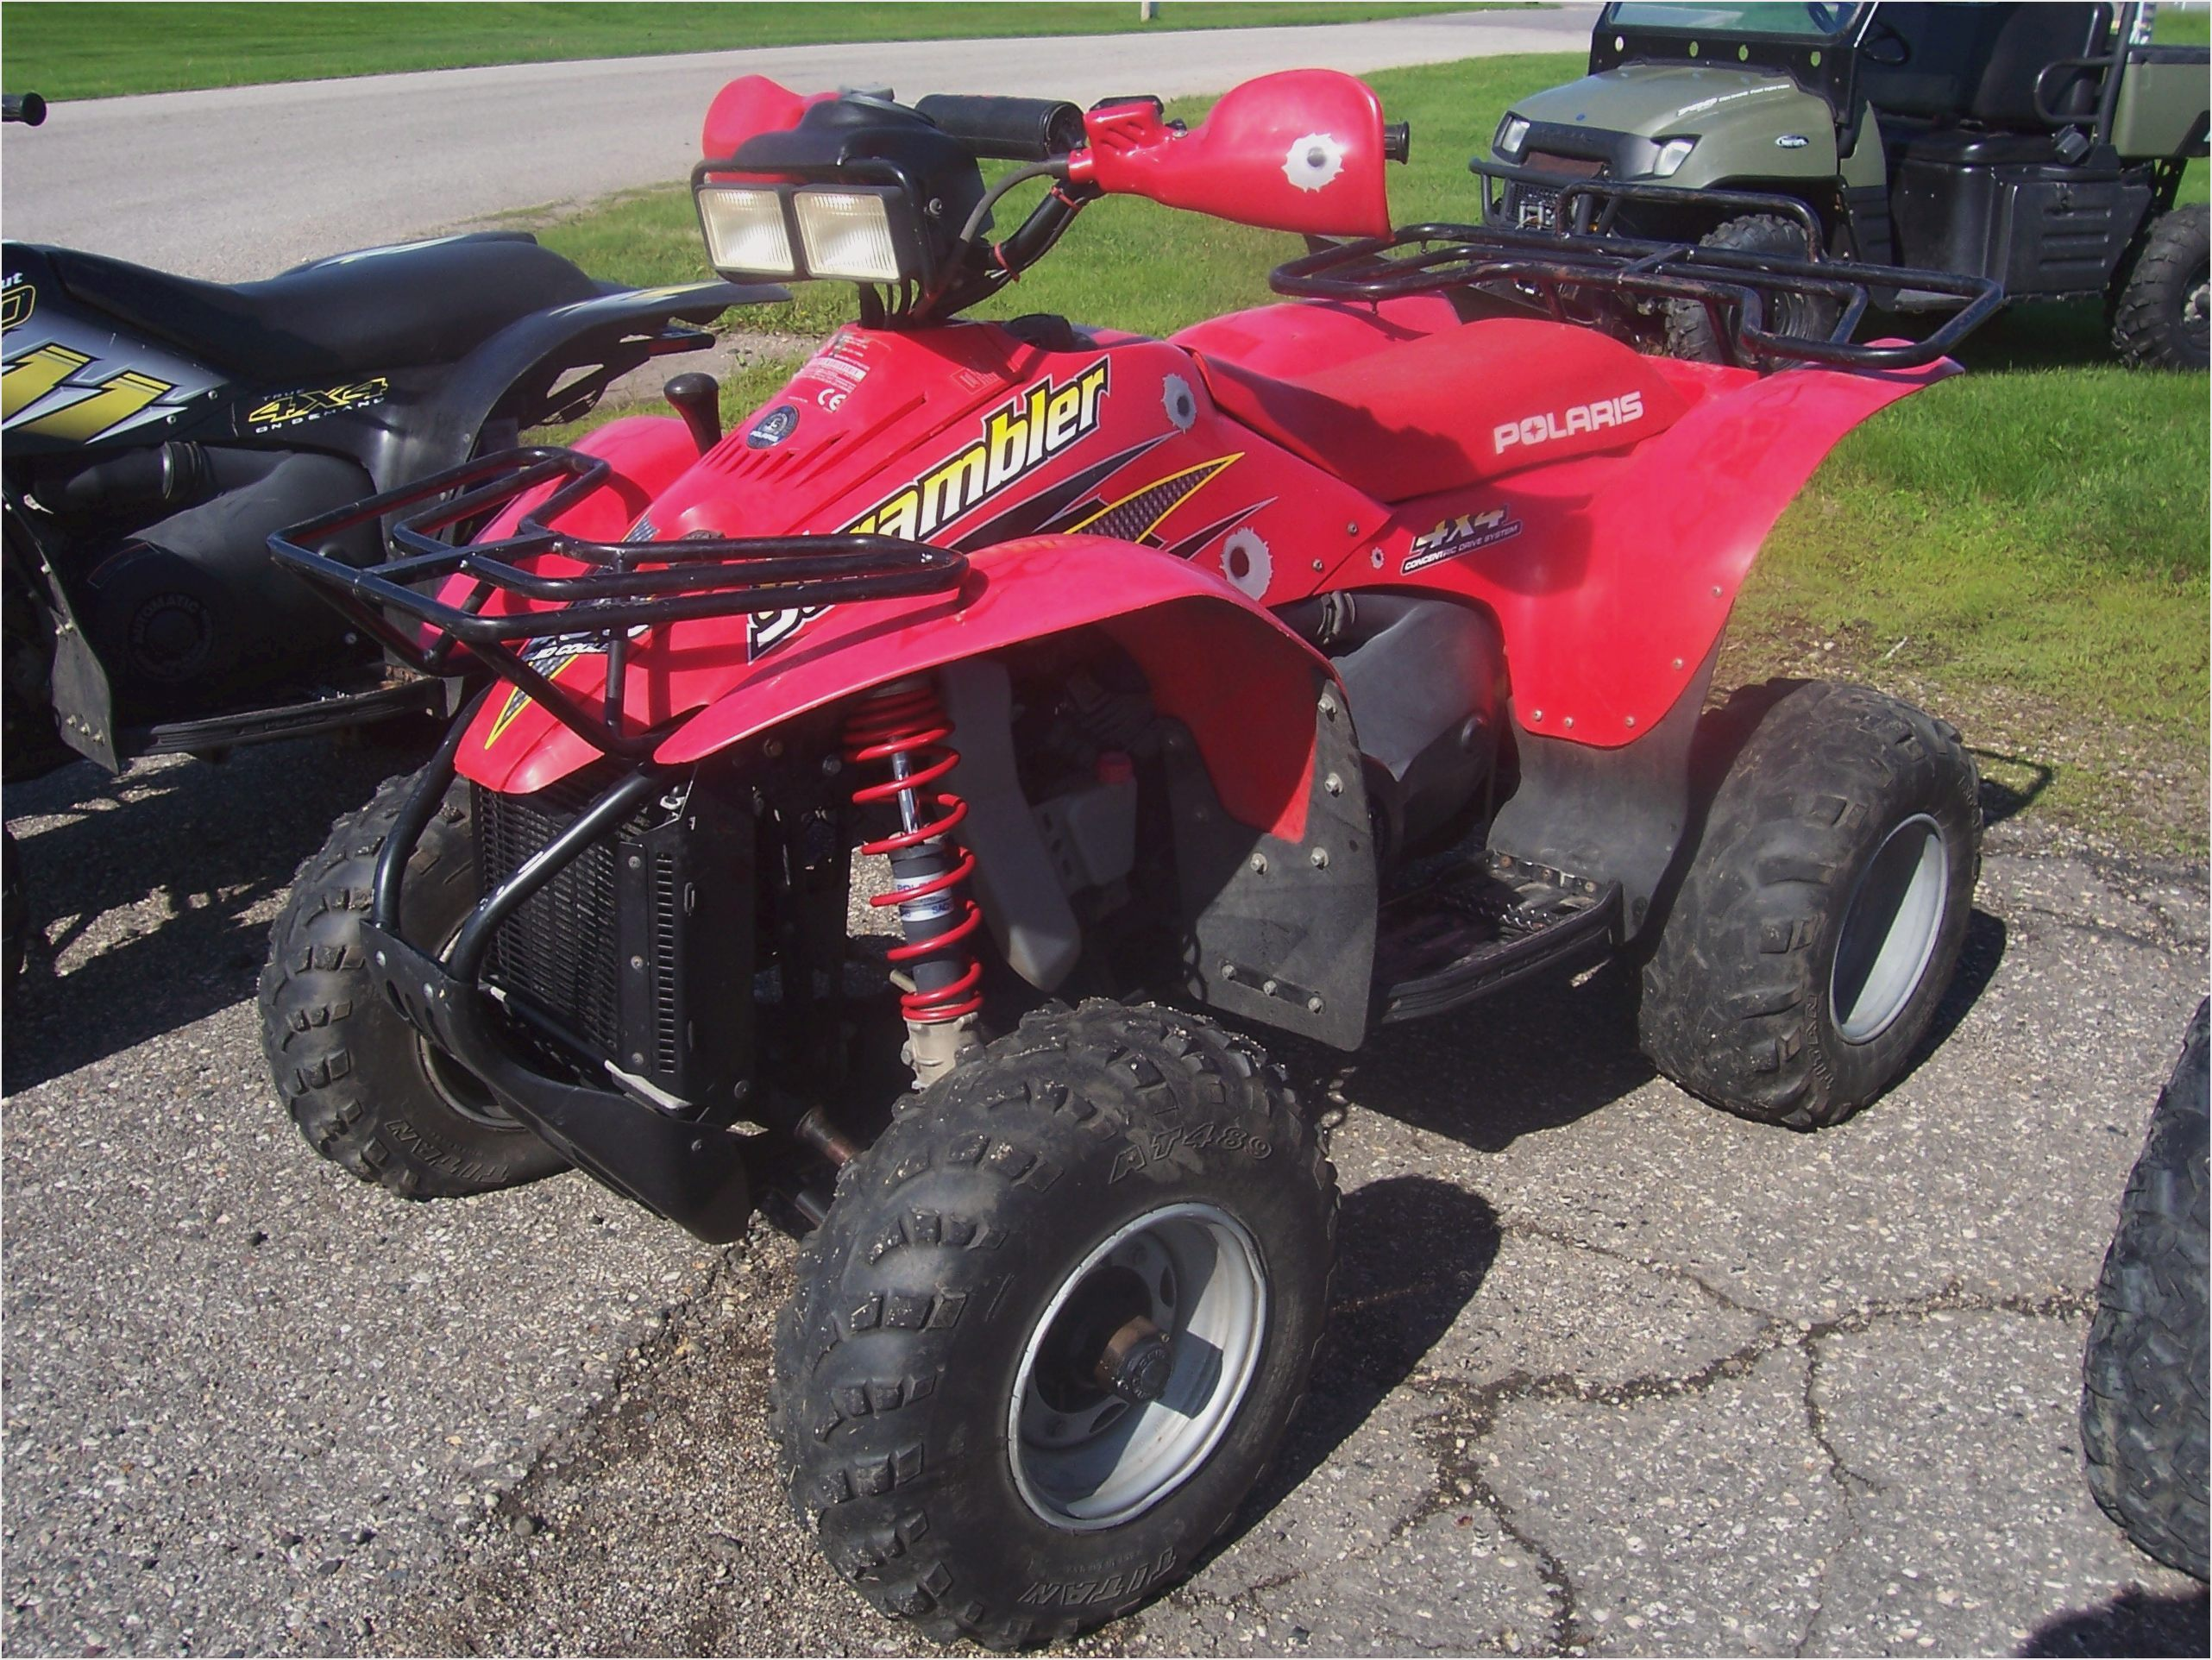 2000 Polaris Scrambler 50 Specs 2003 Wiring Diagram Pics And List Of Seriess By Year